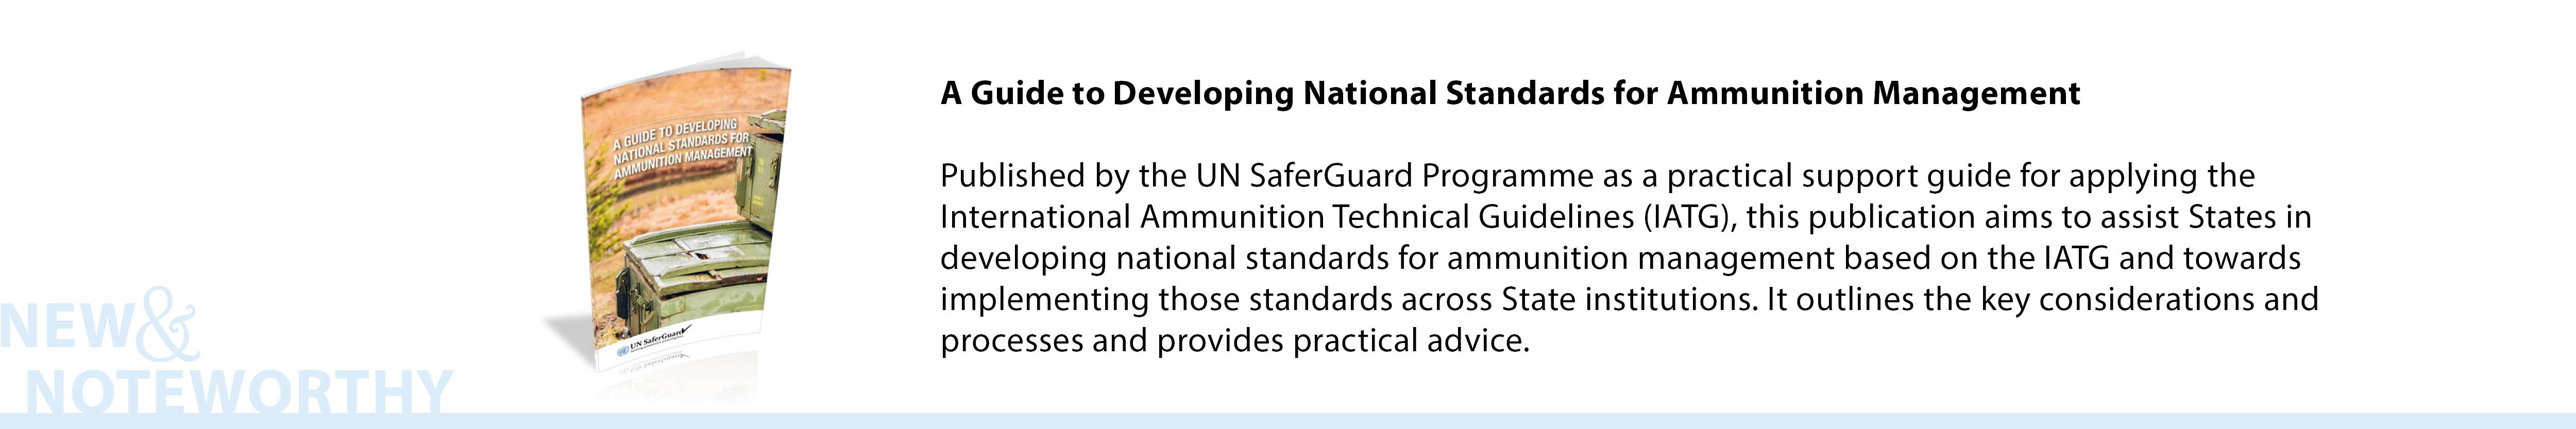 A Guide to Developing National Standards for Ammunition Management - Published by the UN SaferGuard Programme as a practical support guide for applying the International Ammunition Technical Guidelines (IATG), this publication aims to assist States in developing national standards for ammunition management based on the IATG and towards implementing those standards across State institutions. It outlines the key considerations and processes and provides practical advice.